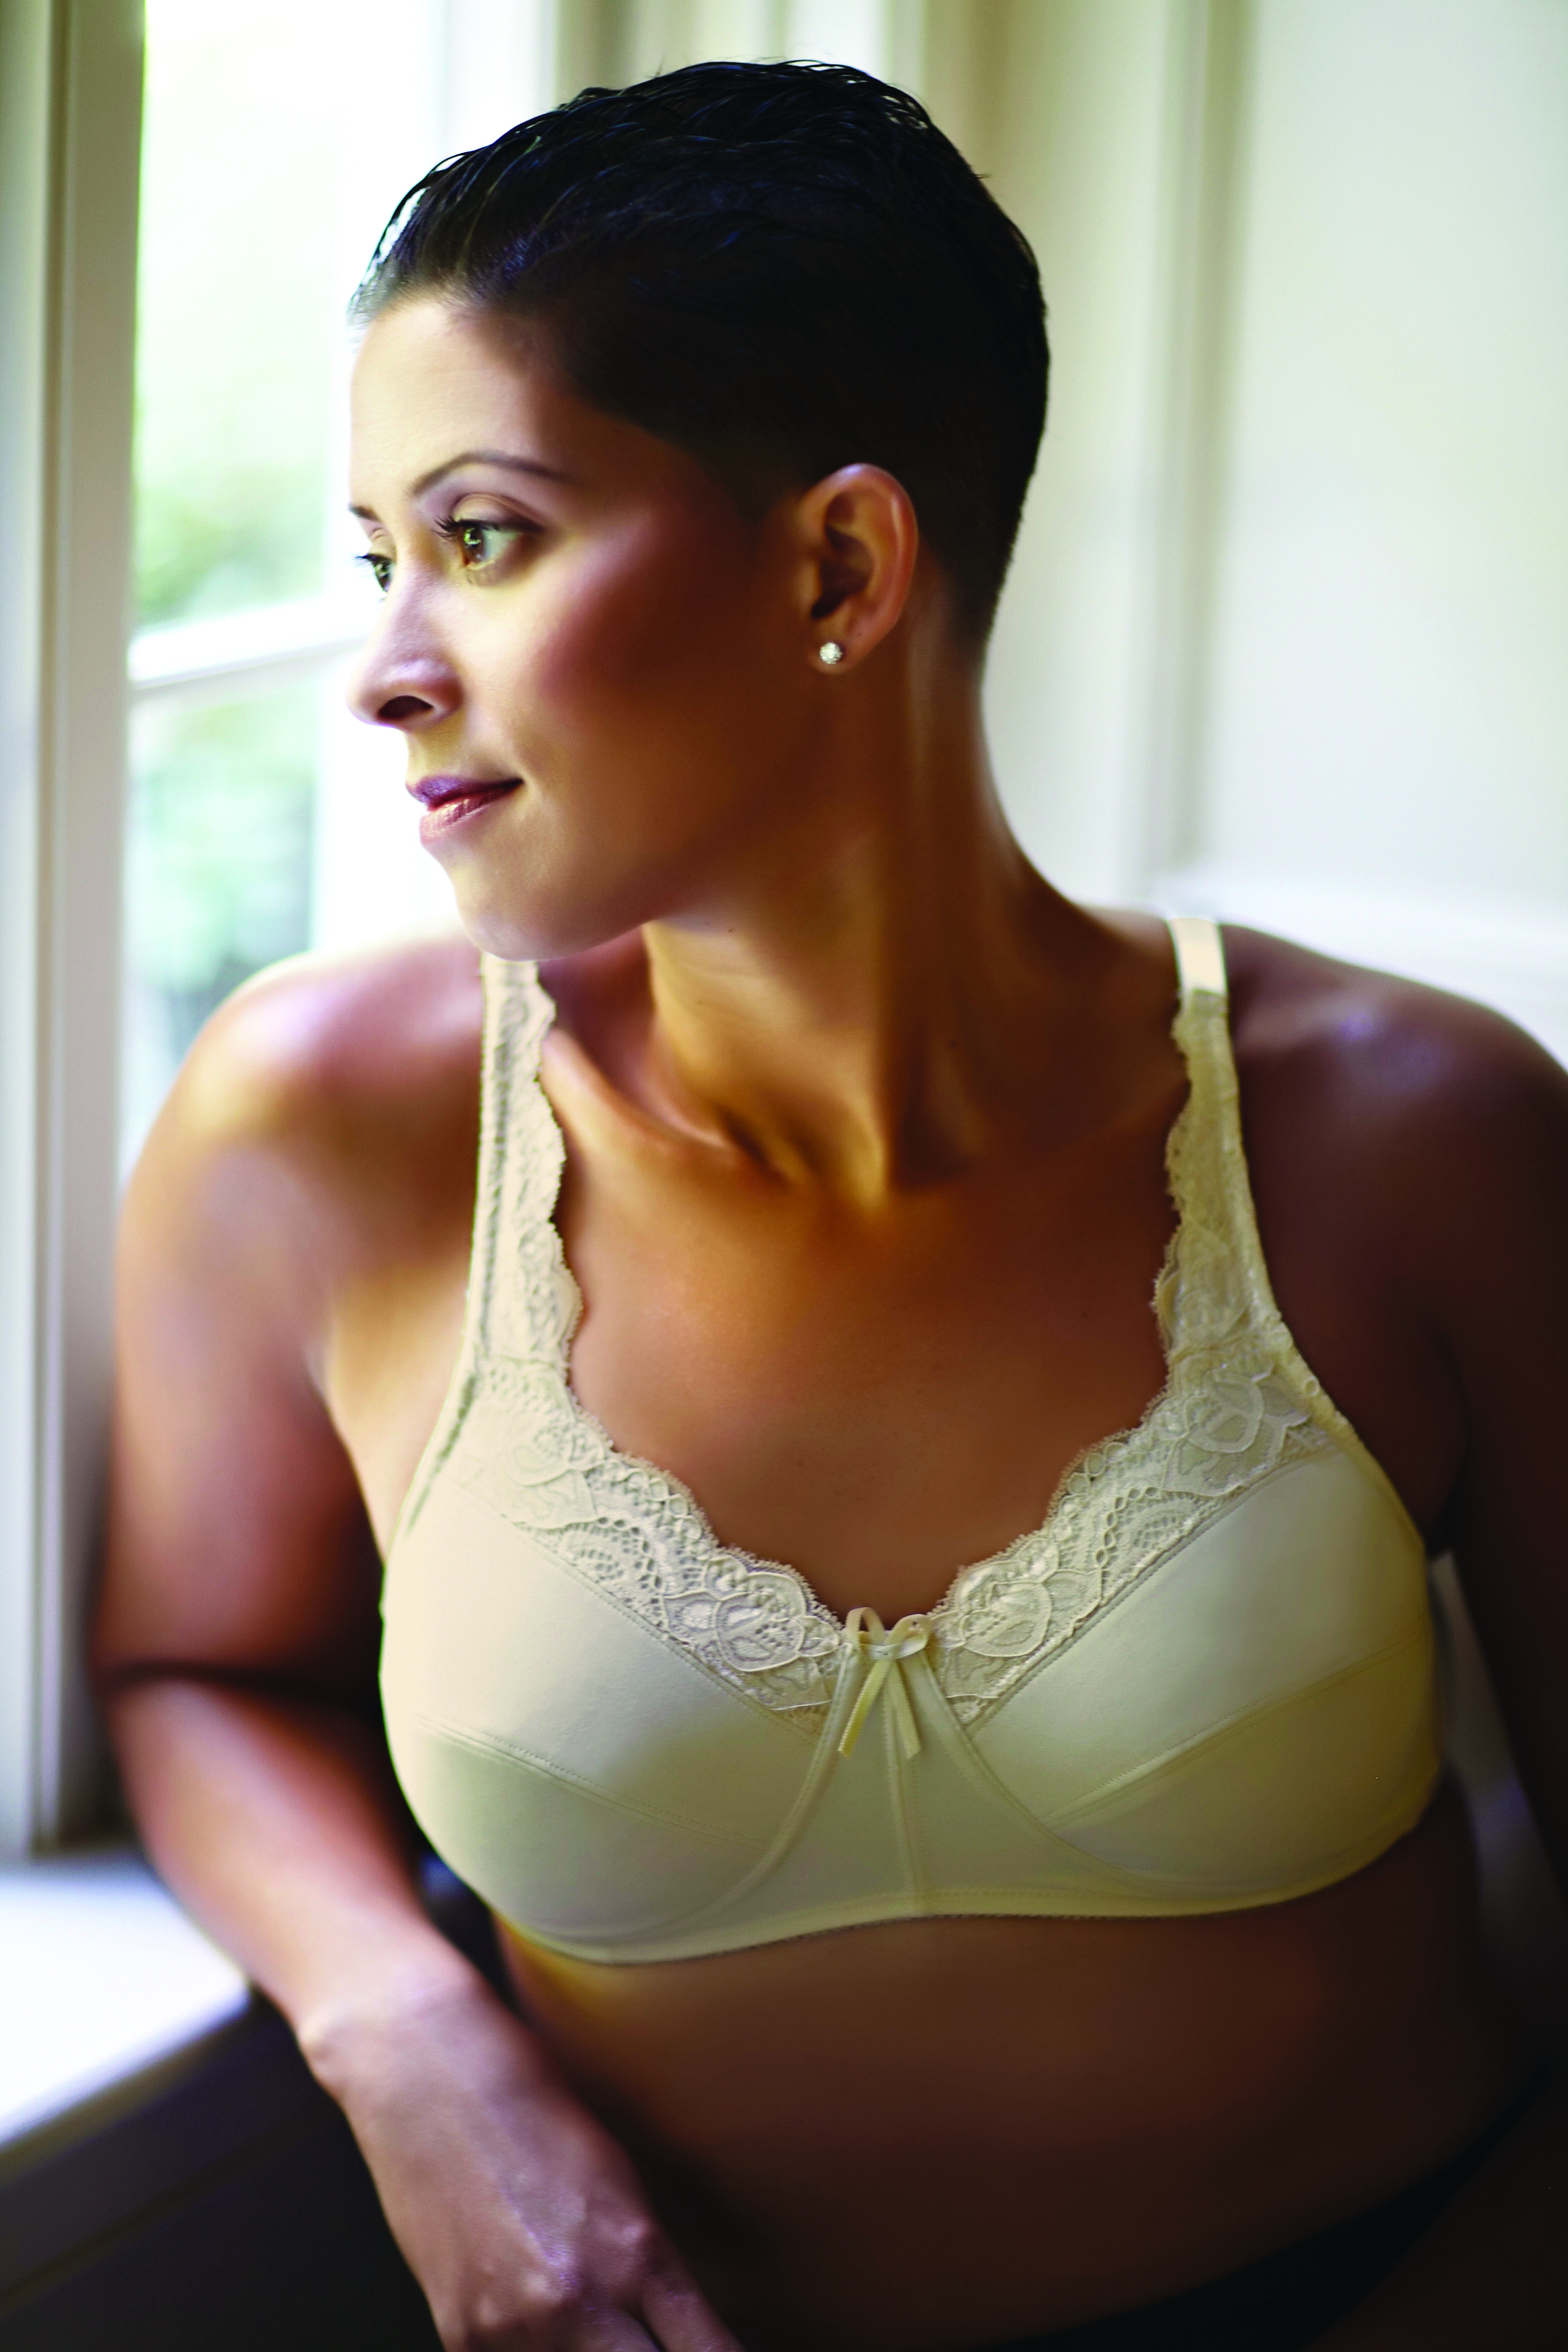 American Breast Care Lace Top Bra